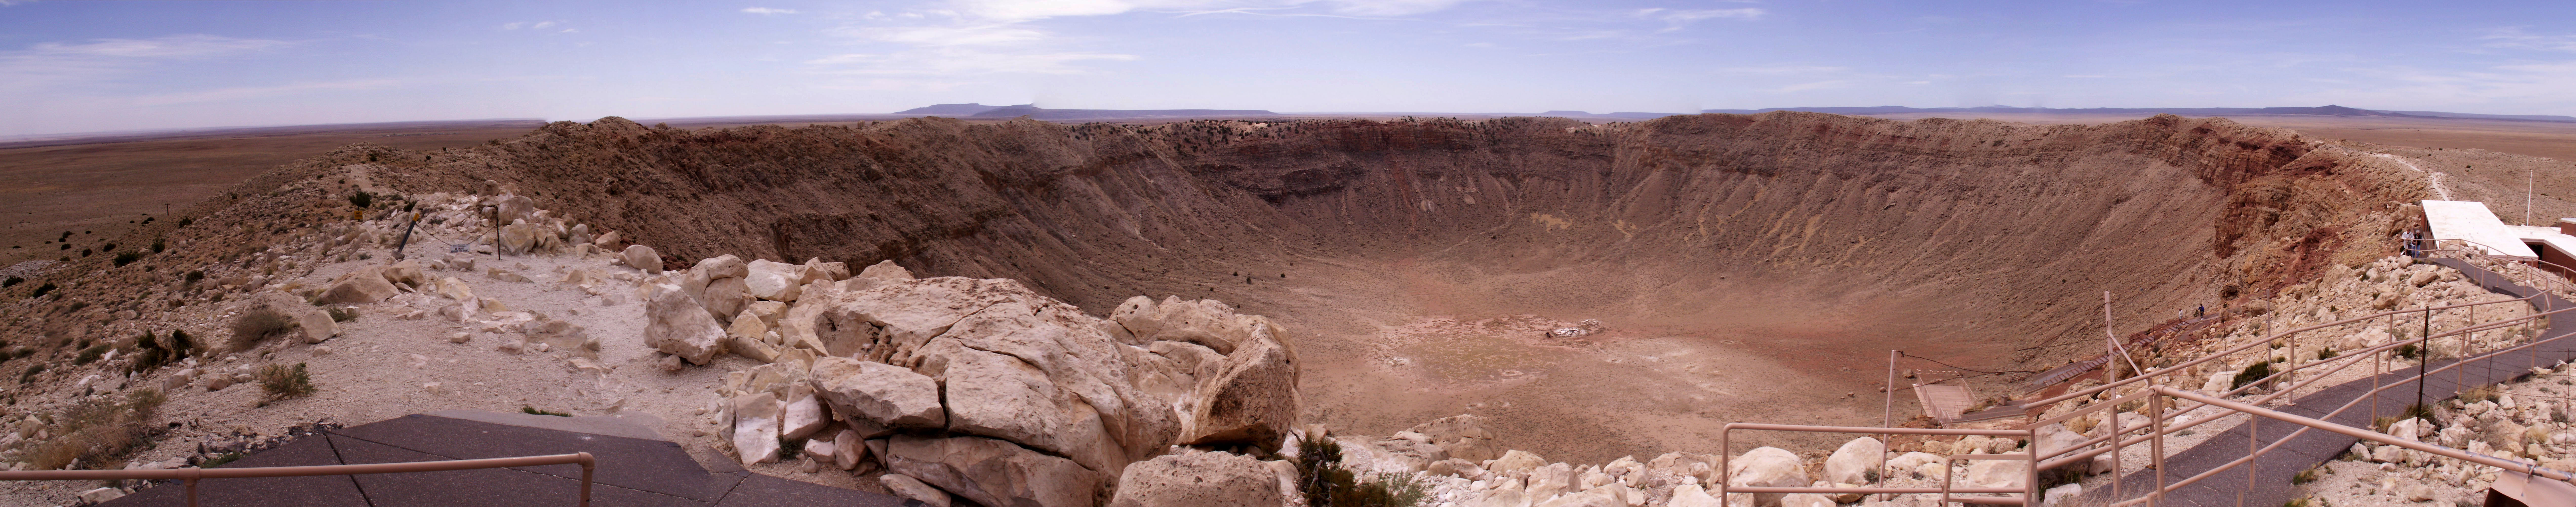 New research at Meteor Crater shows extreme temperatures and pressures during the impact that created the crater 49,000 years ago.